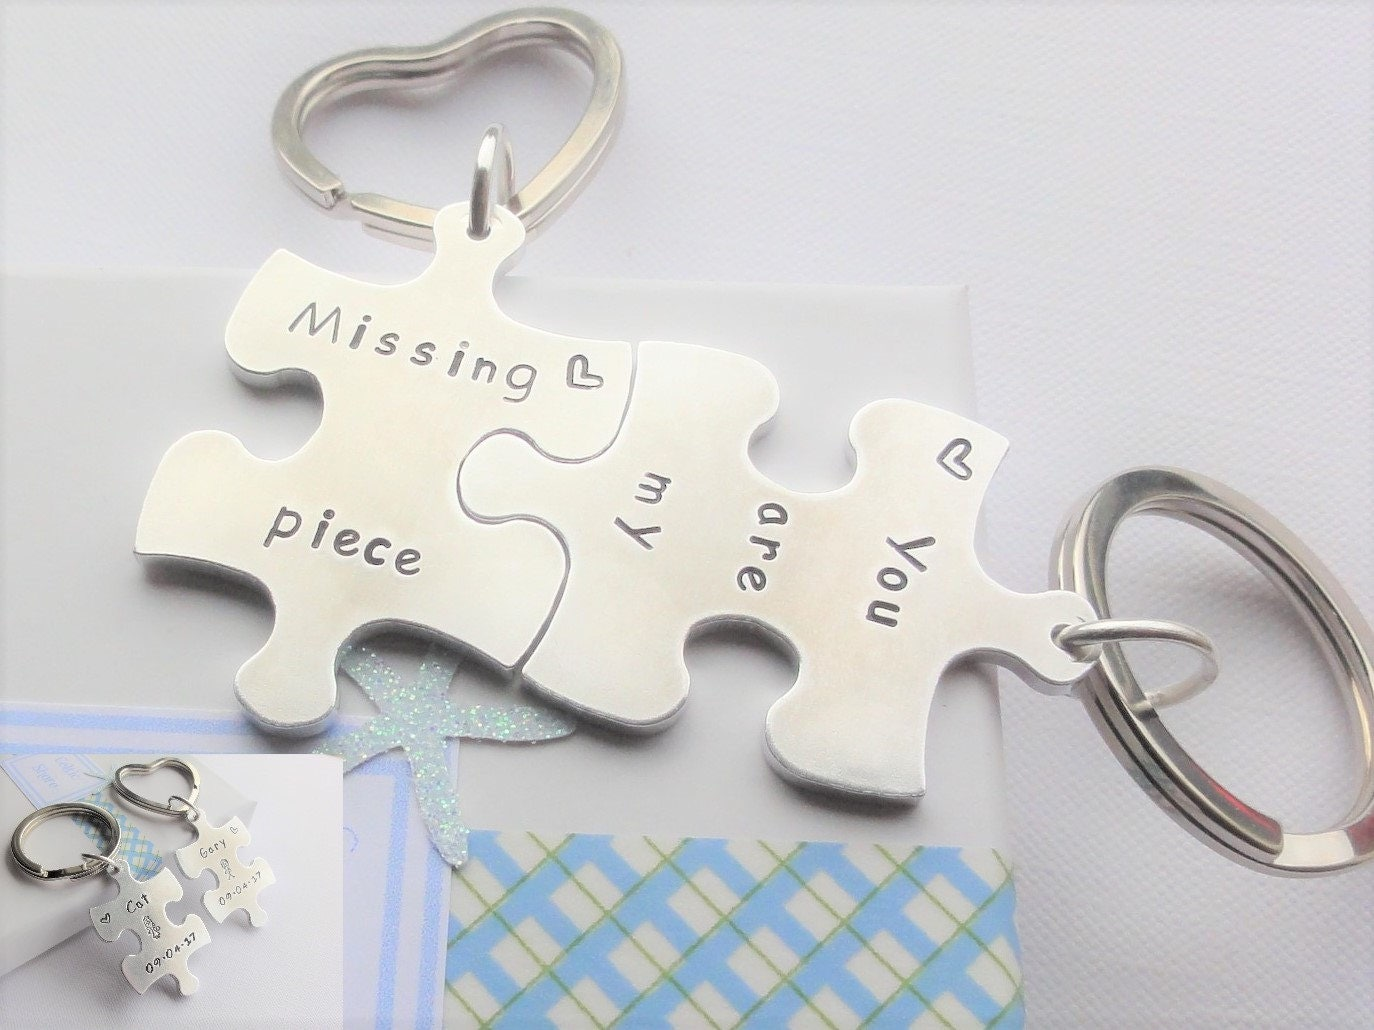 2 Personalised Interlocking Aluminum Puzzle Jigsaw Keyrings  Names Dates Designs Words  You are My Missing Piece